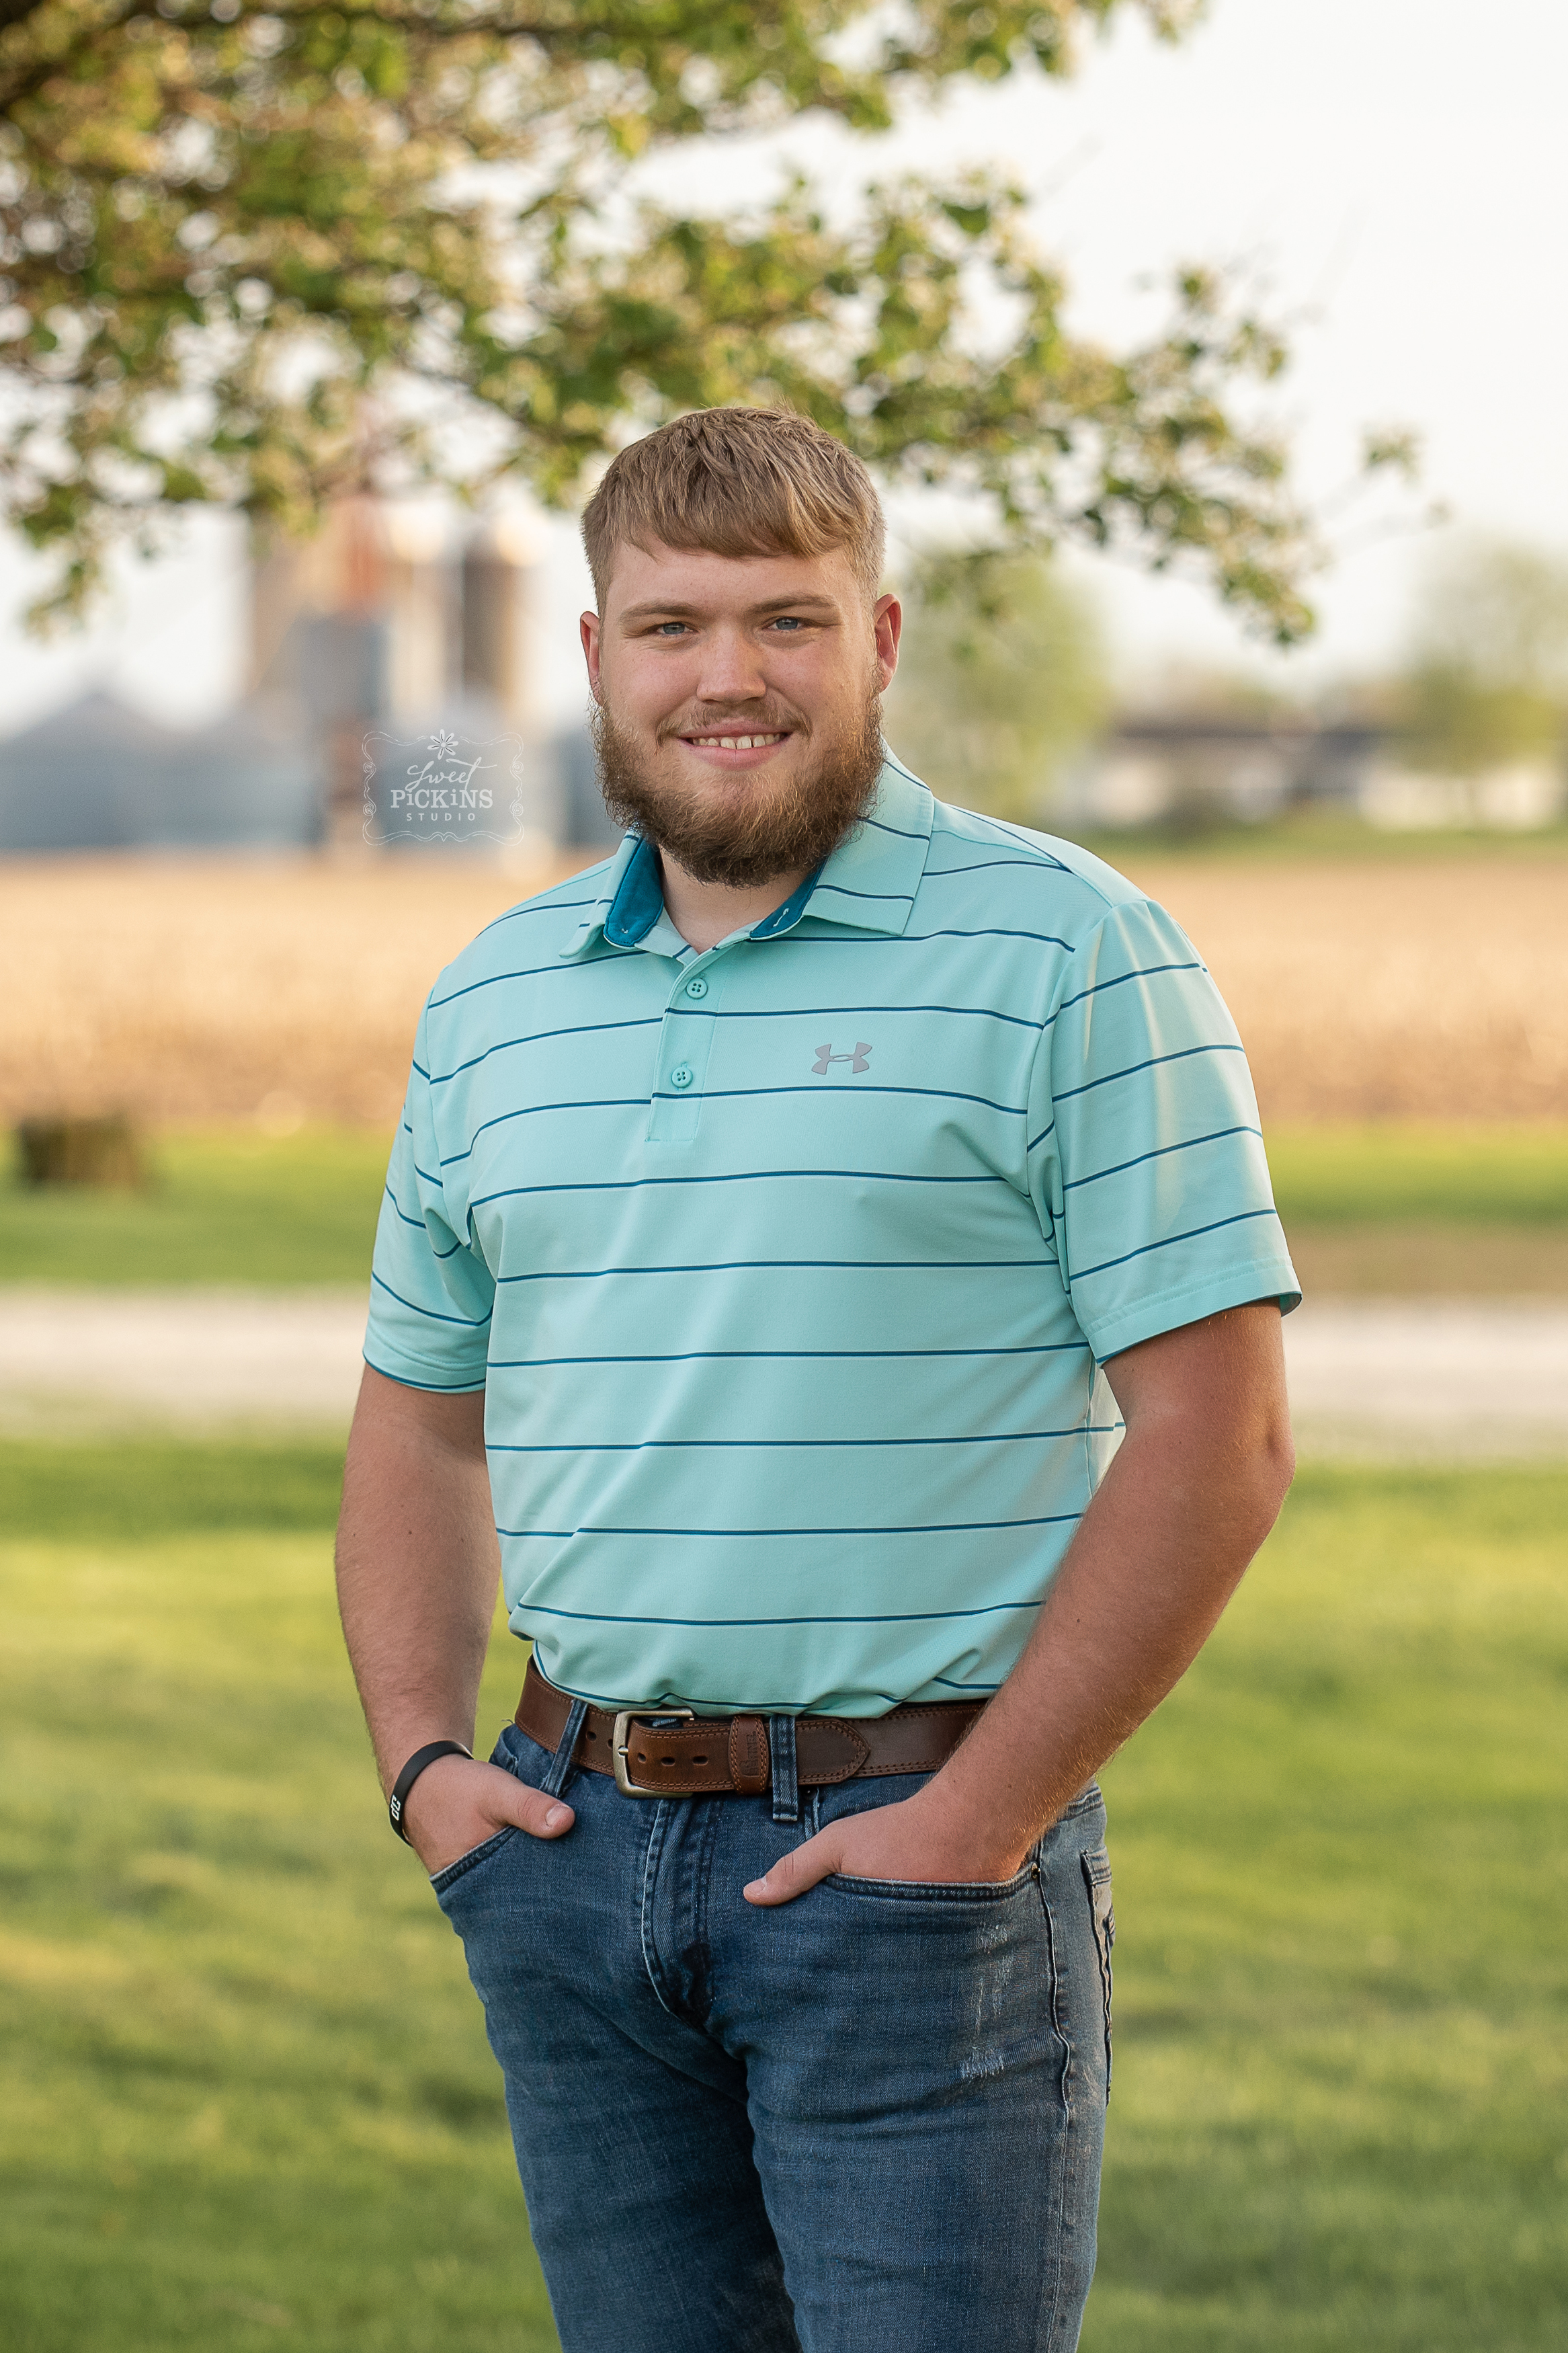 Class of 2019 Senior Guy Session by Sweet Pickins Studio | Sunset on Indiana grain farm in Spring